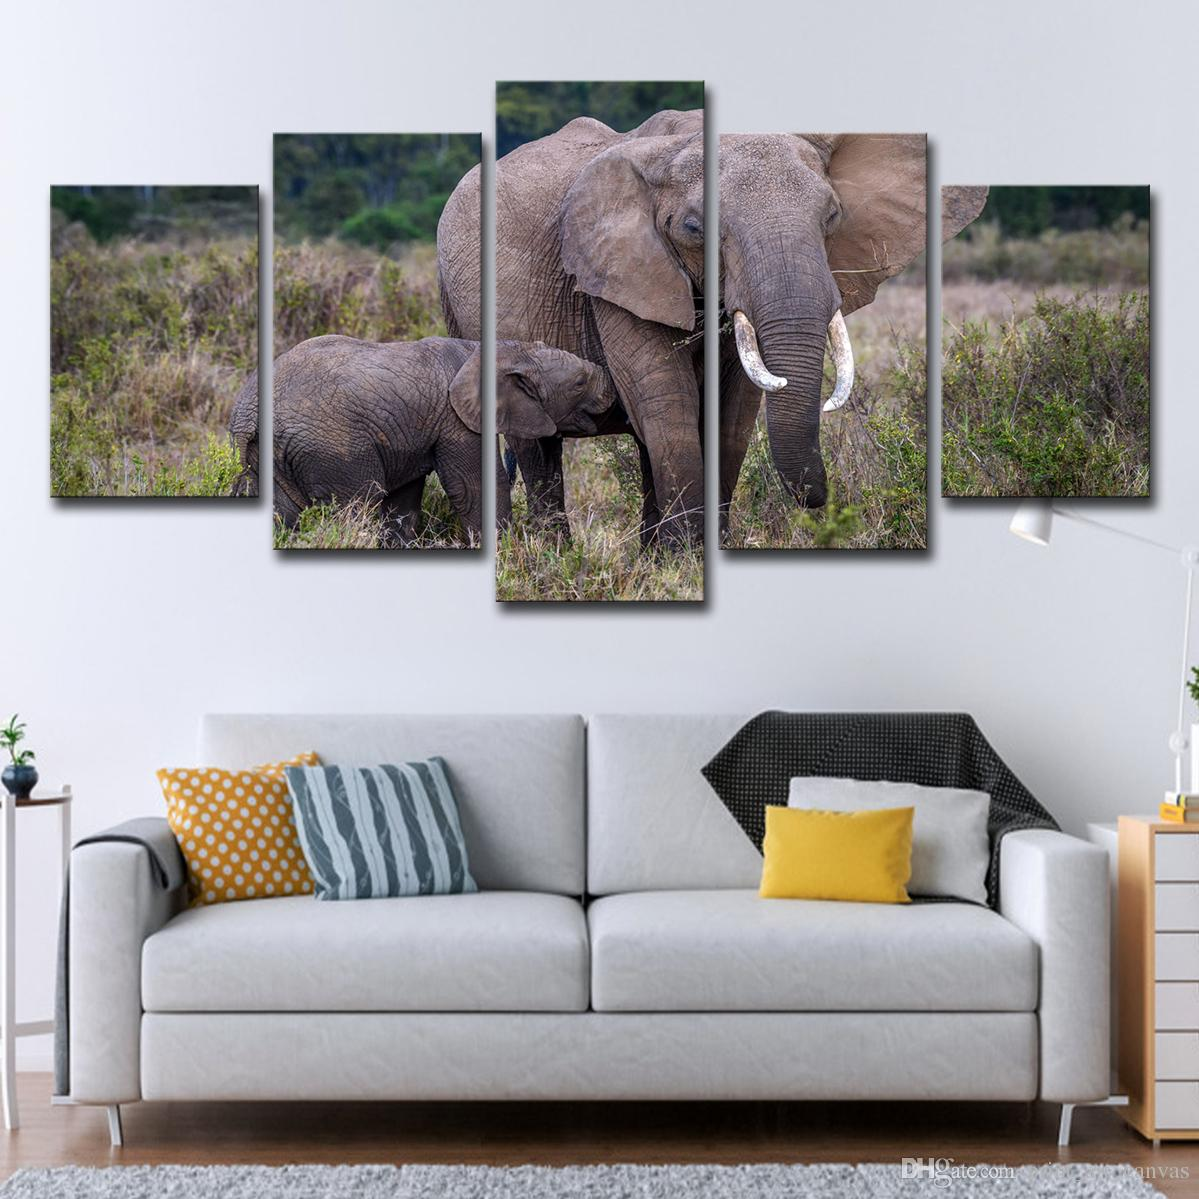 2019 Painting Wall Art Home Decor Living Room 5 Panel Africa Elephant Wall Art Poster Tree Landscape Prints Pictures From Print Art Canvas 16 41